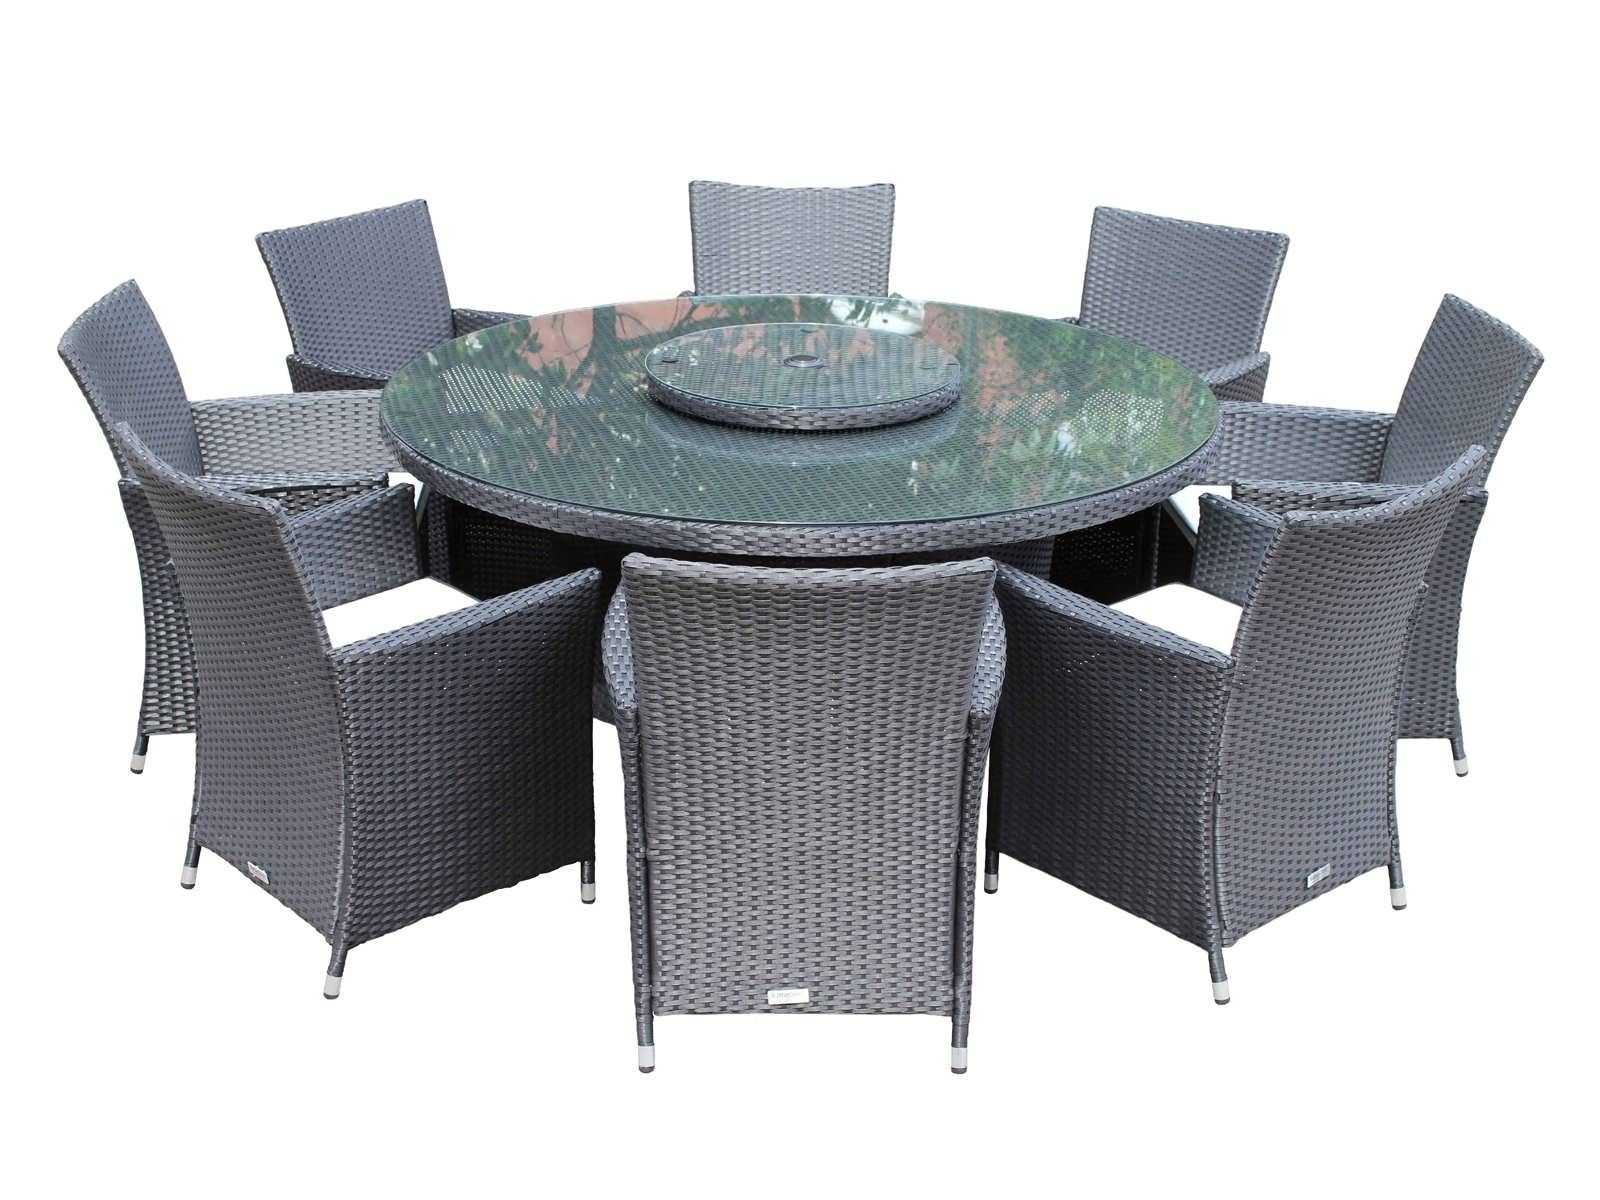 8 Cambridge Chairs With Large Round Table Dining Set Free Lazy Susan